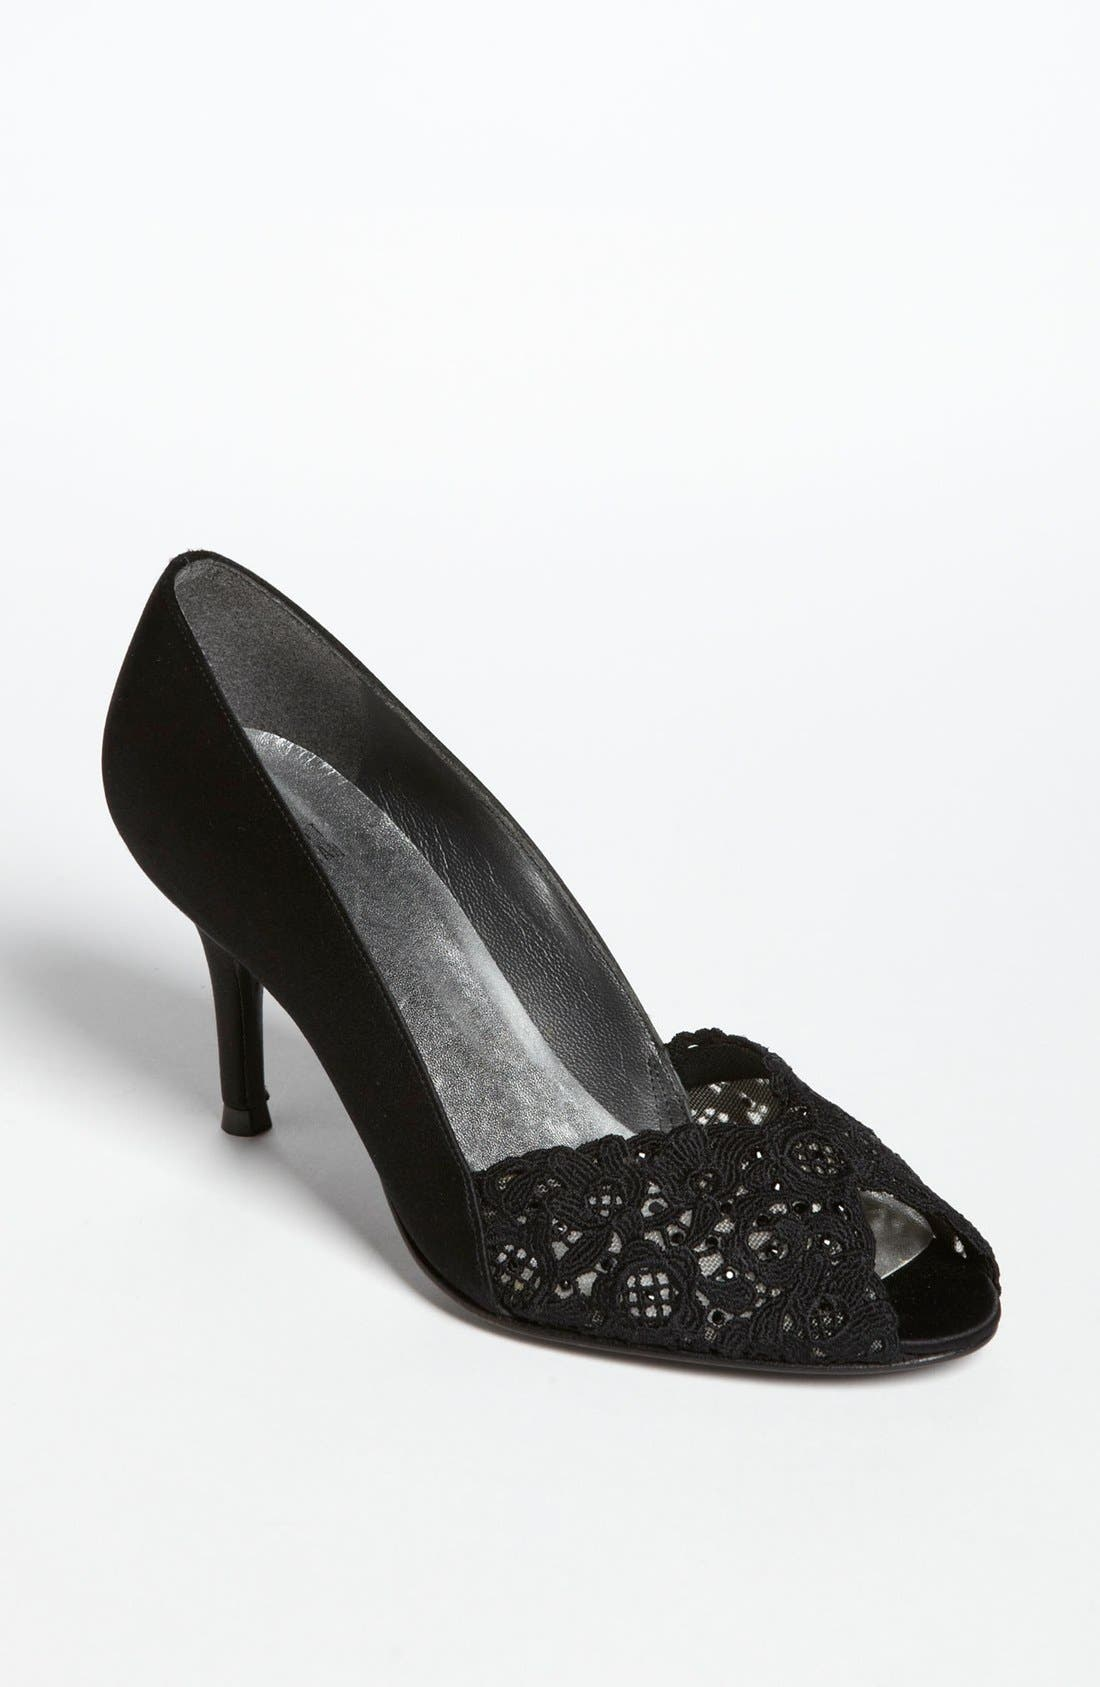 Alternate Image 1 Selected - Stuart Weitzman 'Chantelle' Pump